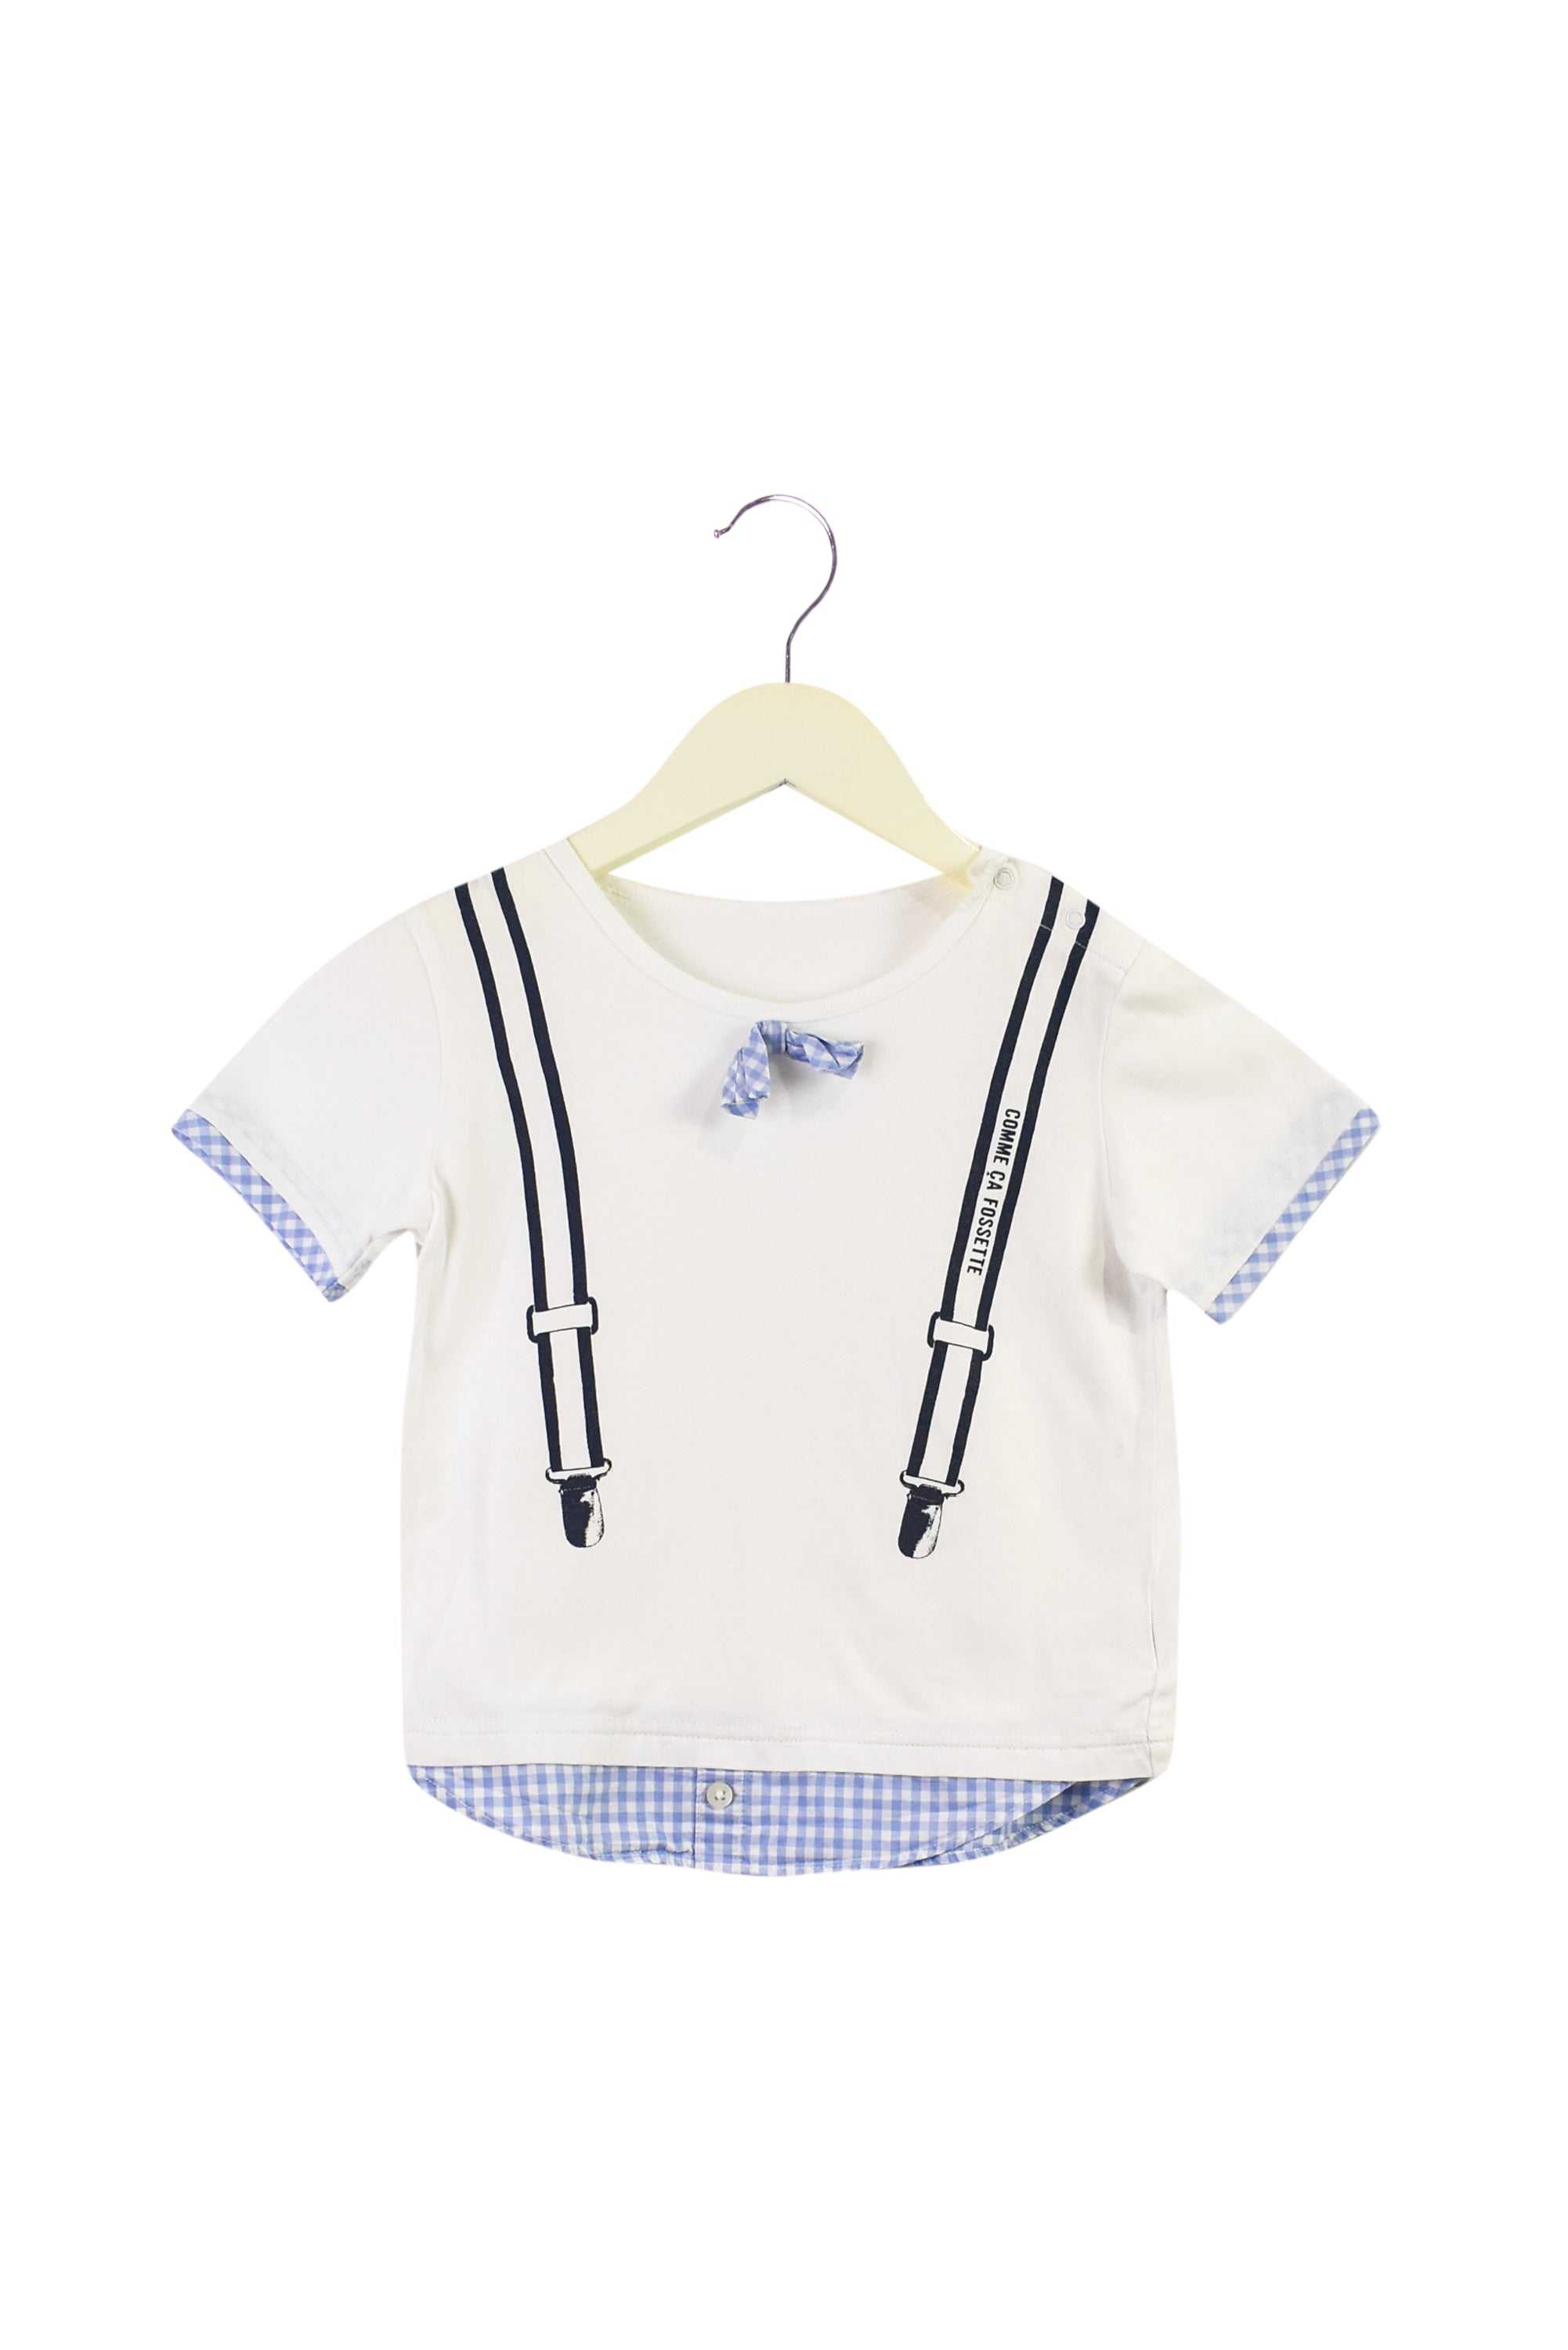 10031480 Comme Ca Fossette Kids~T-Shirt 2-3T at Retykle